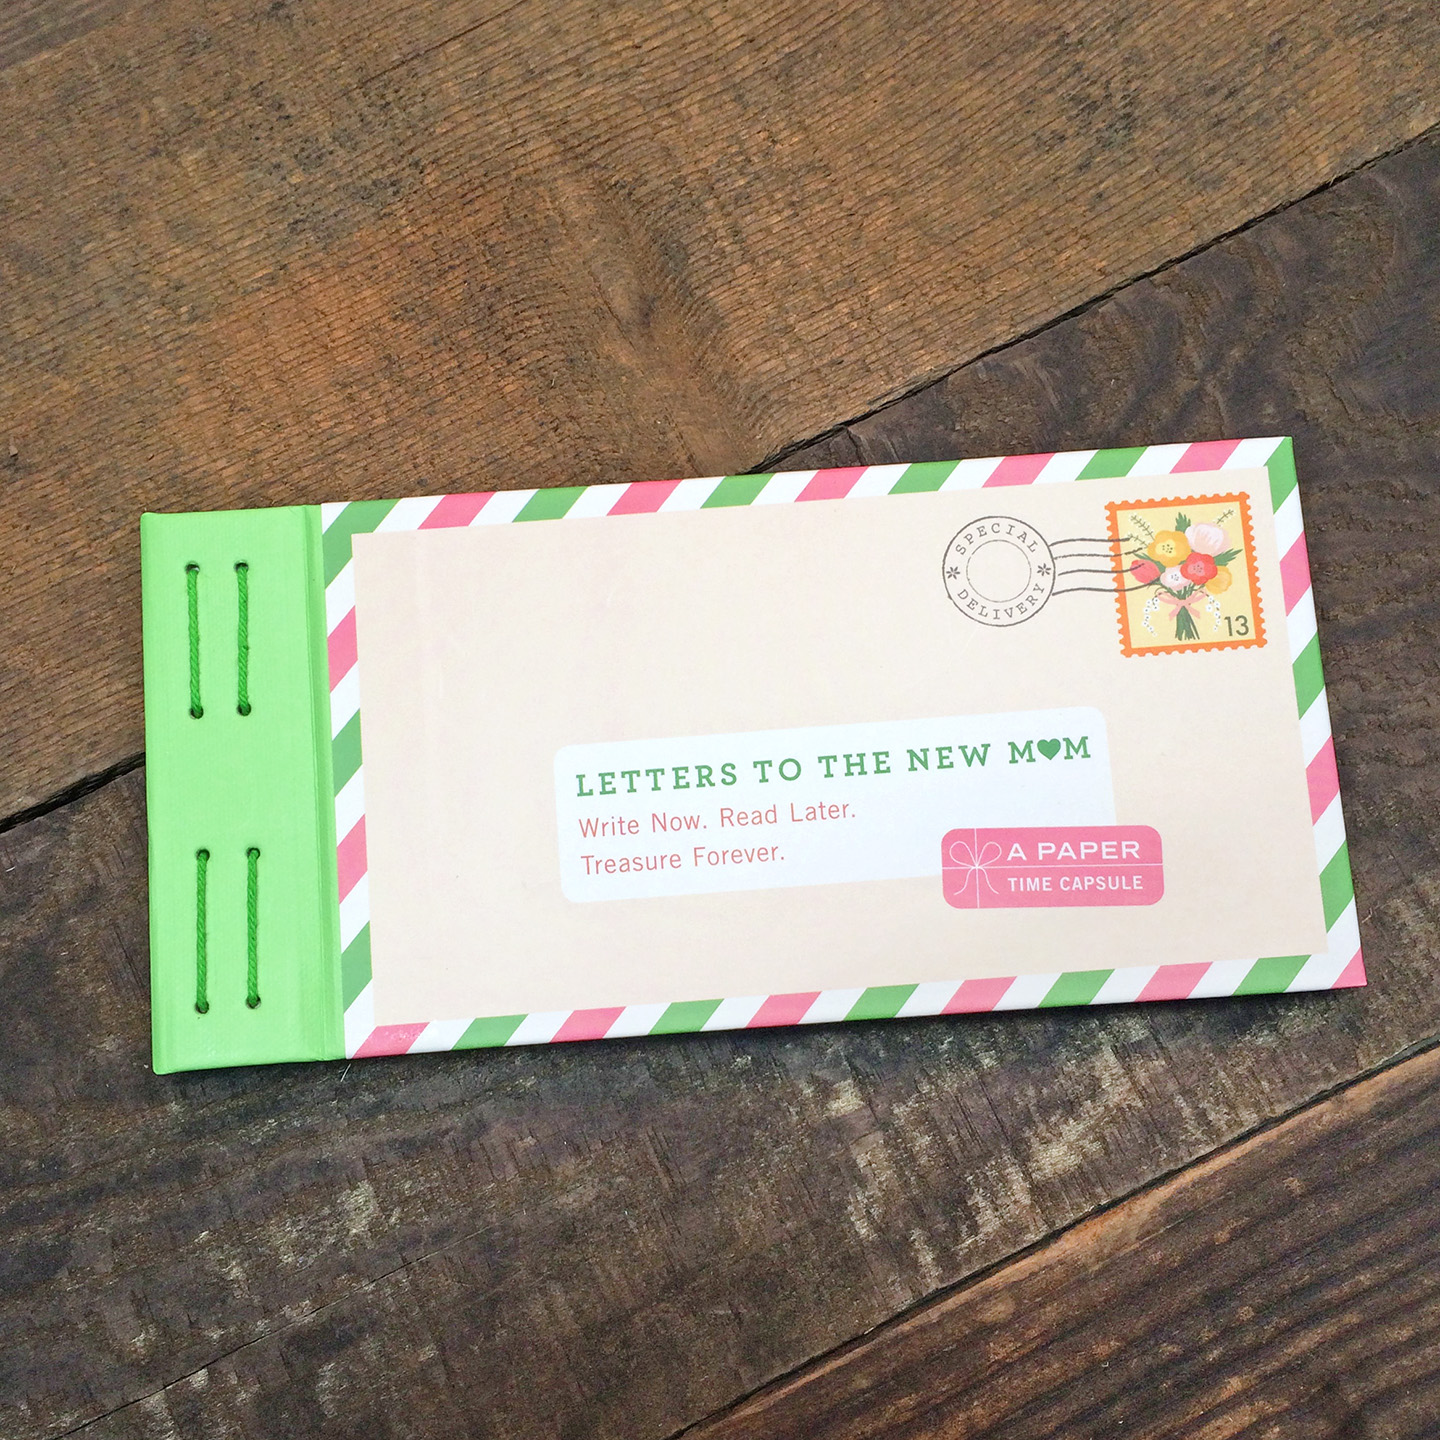 Letters To The New Mom  Leafcutter Designs